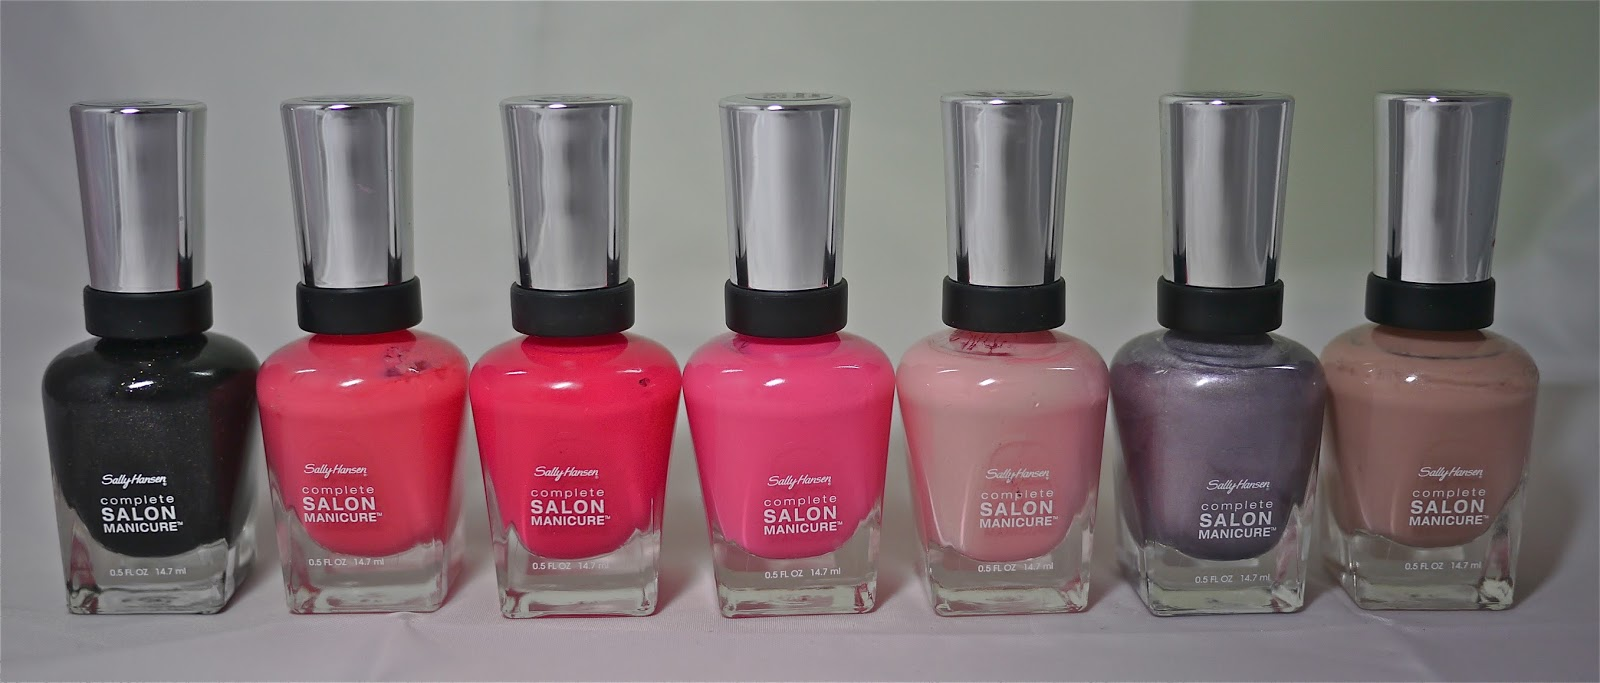 Sally Hansen Complete Salon Manicure Nail Polish Review